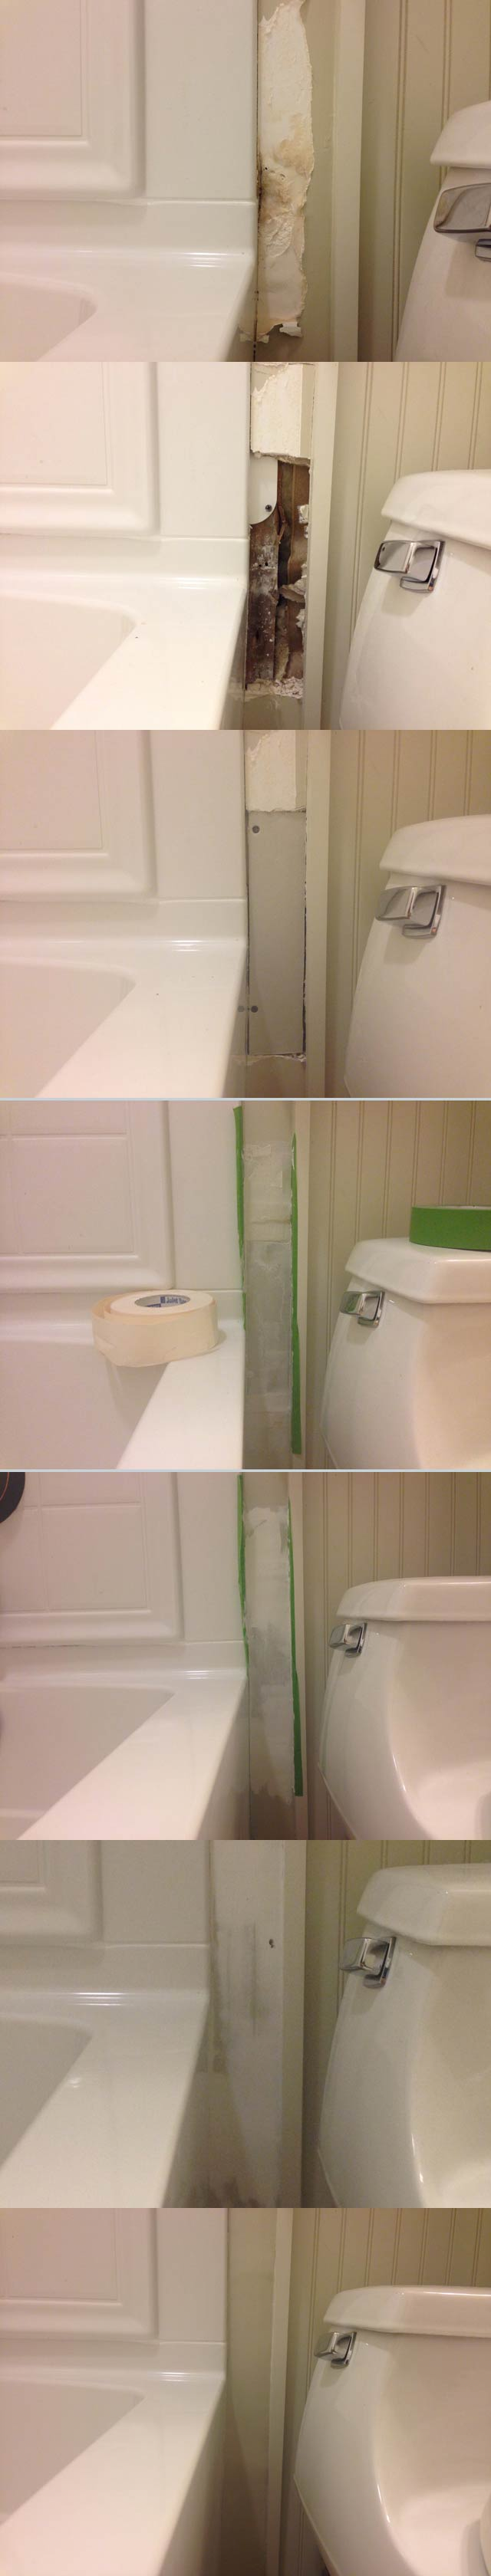 Repair Caulk, Grout, and Drywall in a Weekend   Checking In With Chelsea